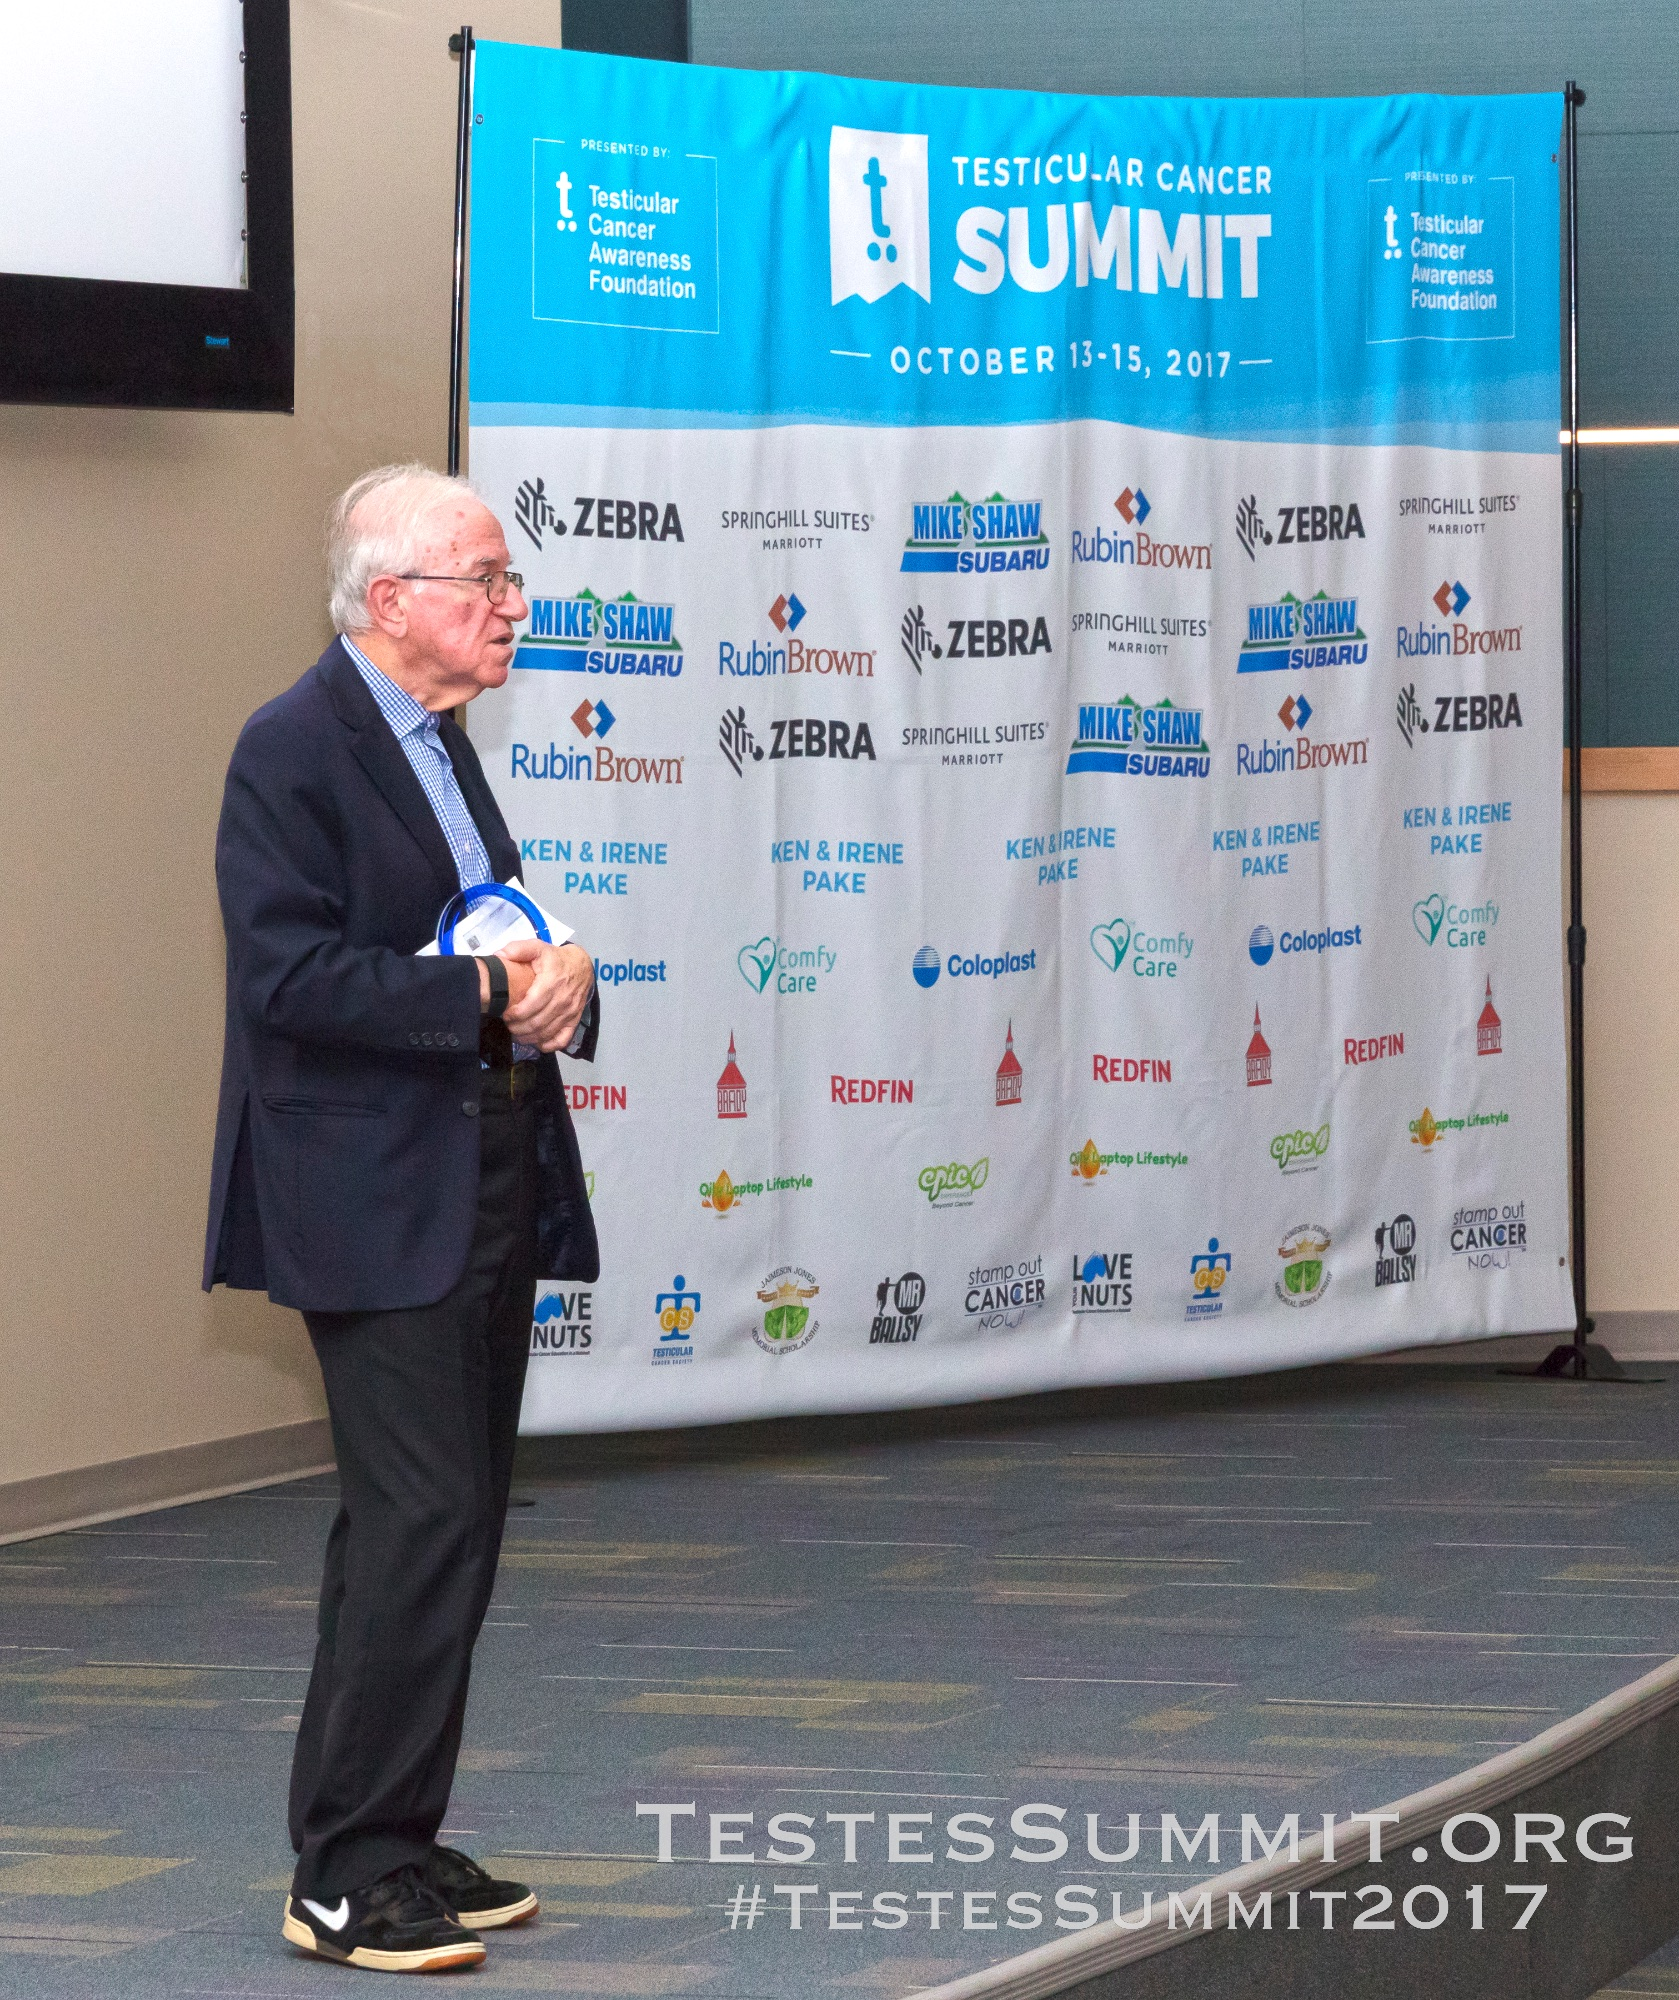 TestesSummit2017-073_Friday images #2-20-HD-WM.jpg